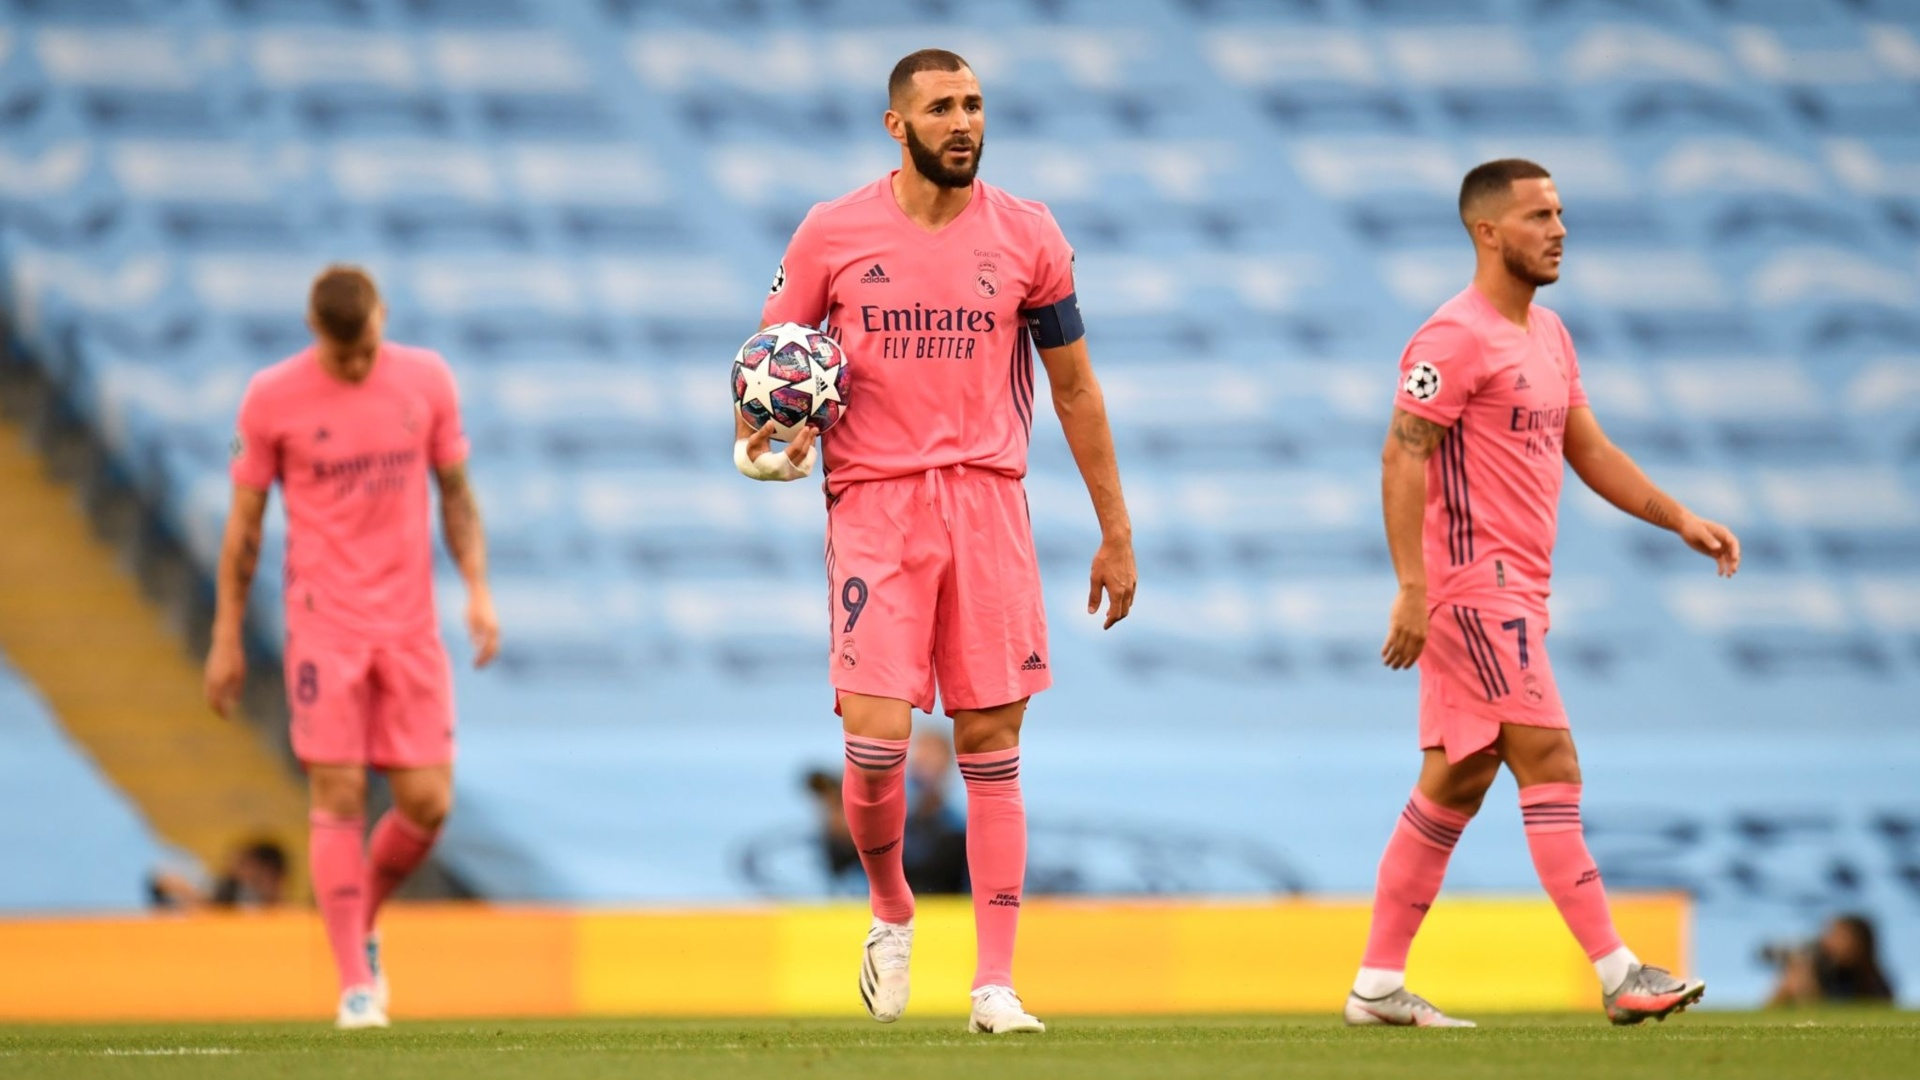 Match report: Manchester City 2-1 Real Madrid (4-2 agg.)